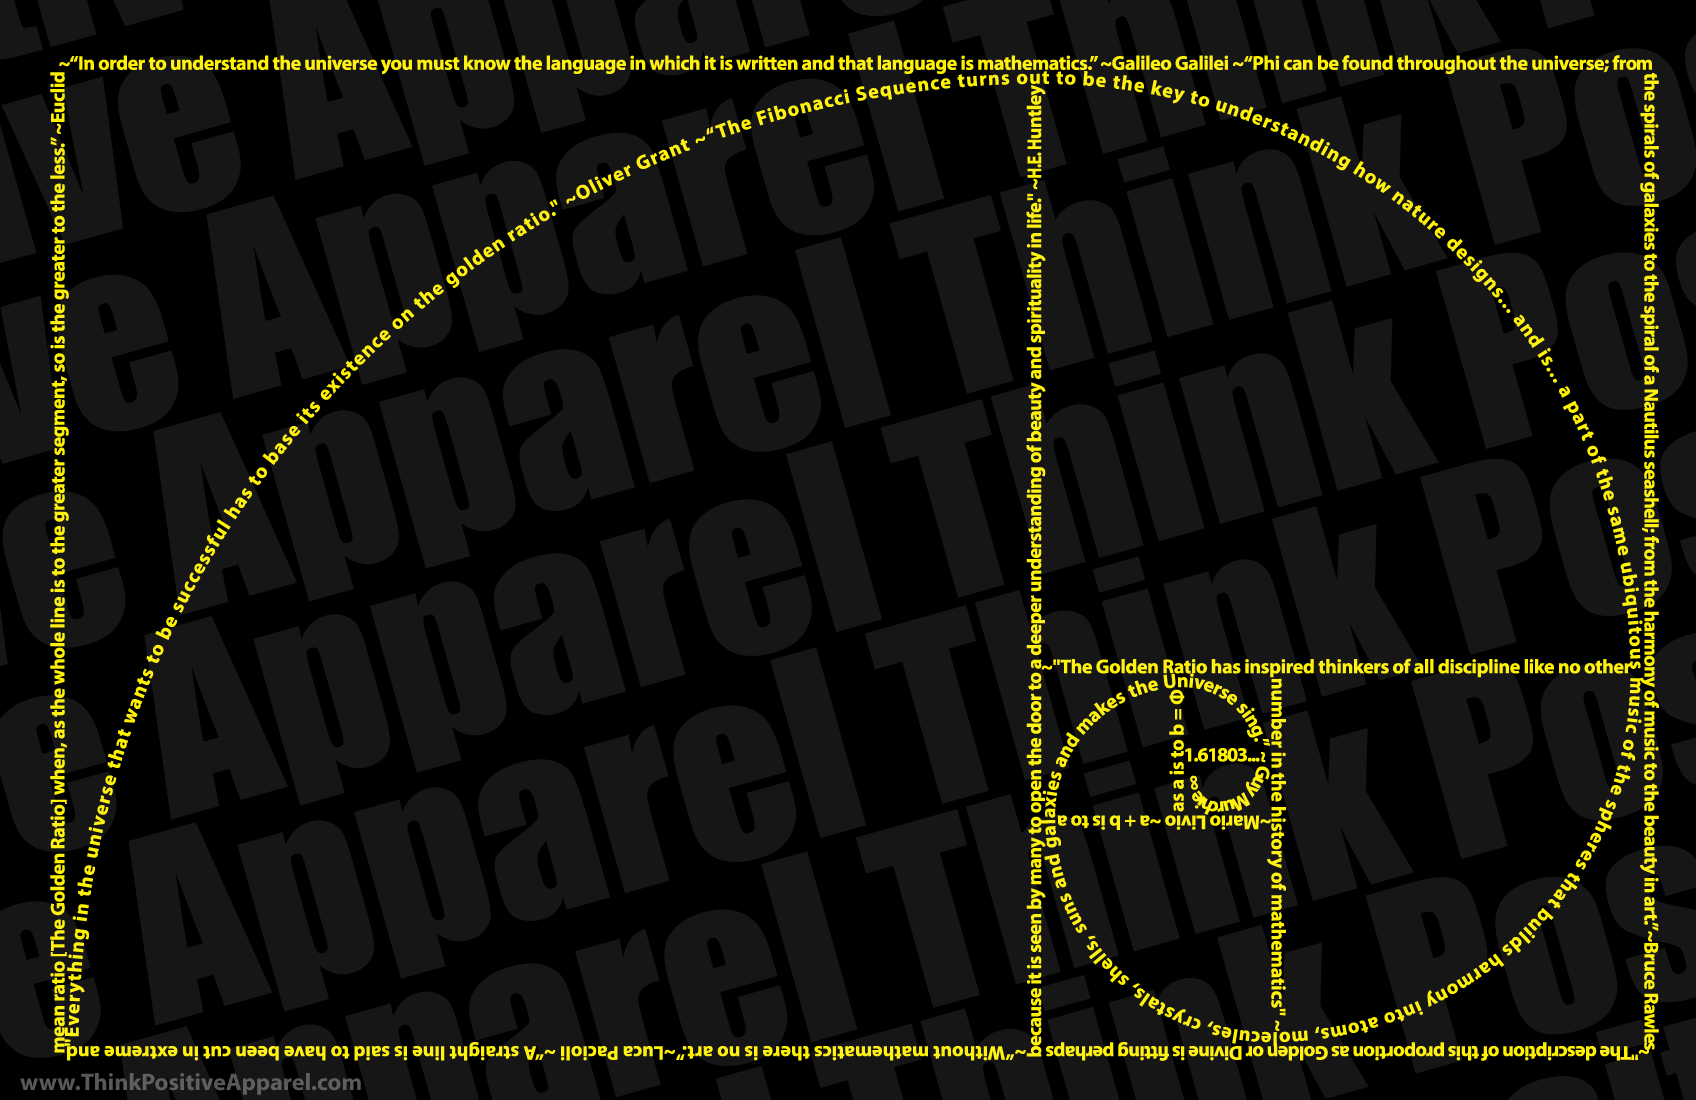 The Golden Ratio Design is made from the Golden Spiral and a series of Golden Rectangles. These shapes are made from tiny words. The words are quotations about the connection between the Golden Ratio and the universe.